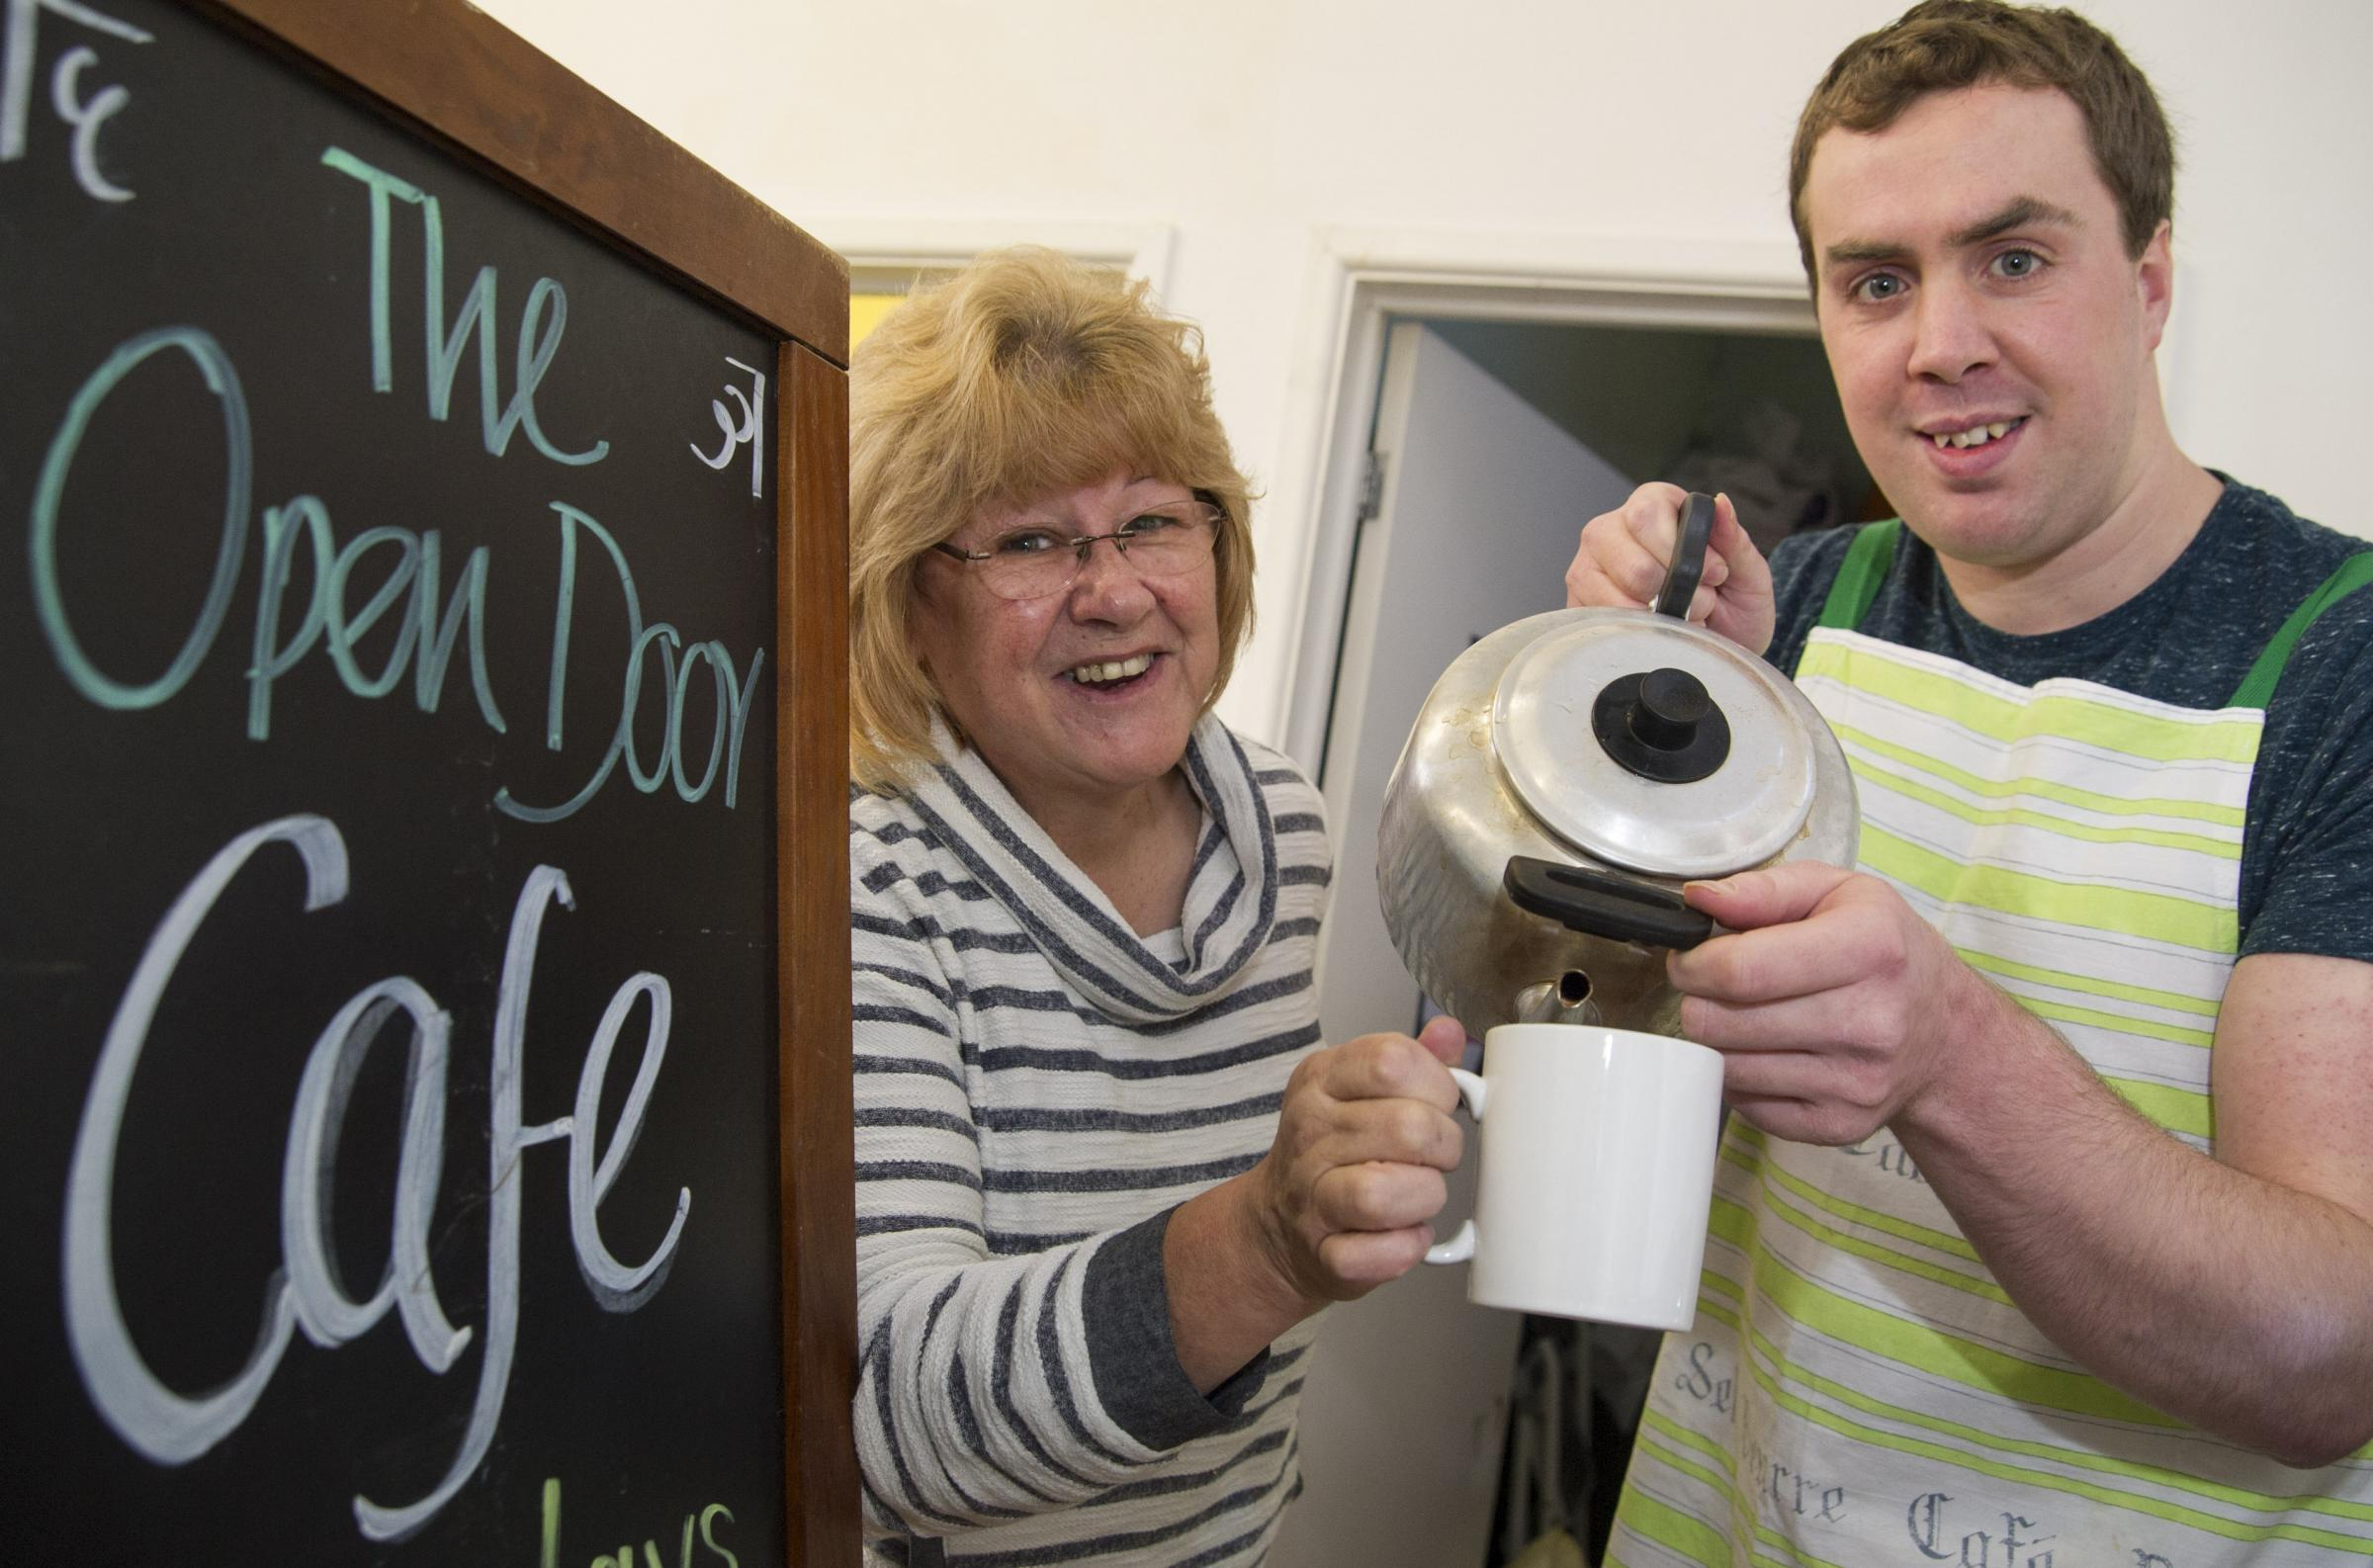 The Open Door centre has been awarded £840 by the Gannett Foundation to fund training for learning disabled members who run the Friday Cafe  Pat Winning ( manager) , Matthew White. Picture by Dave C